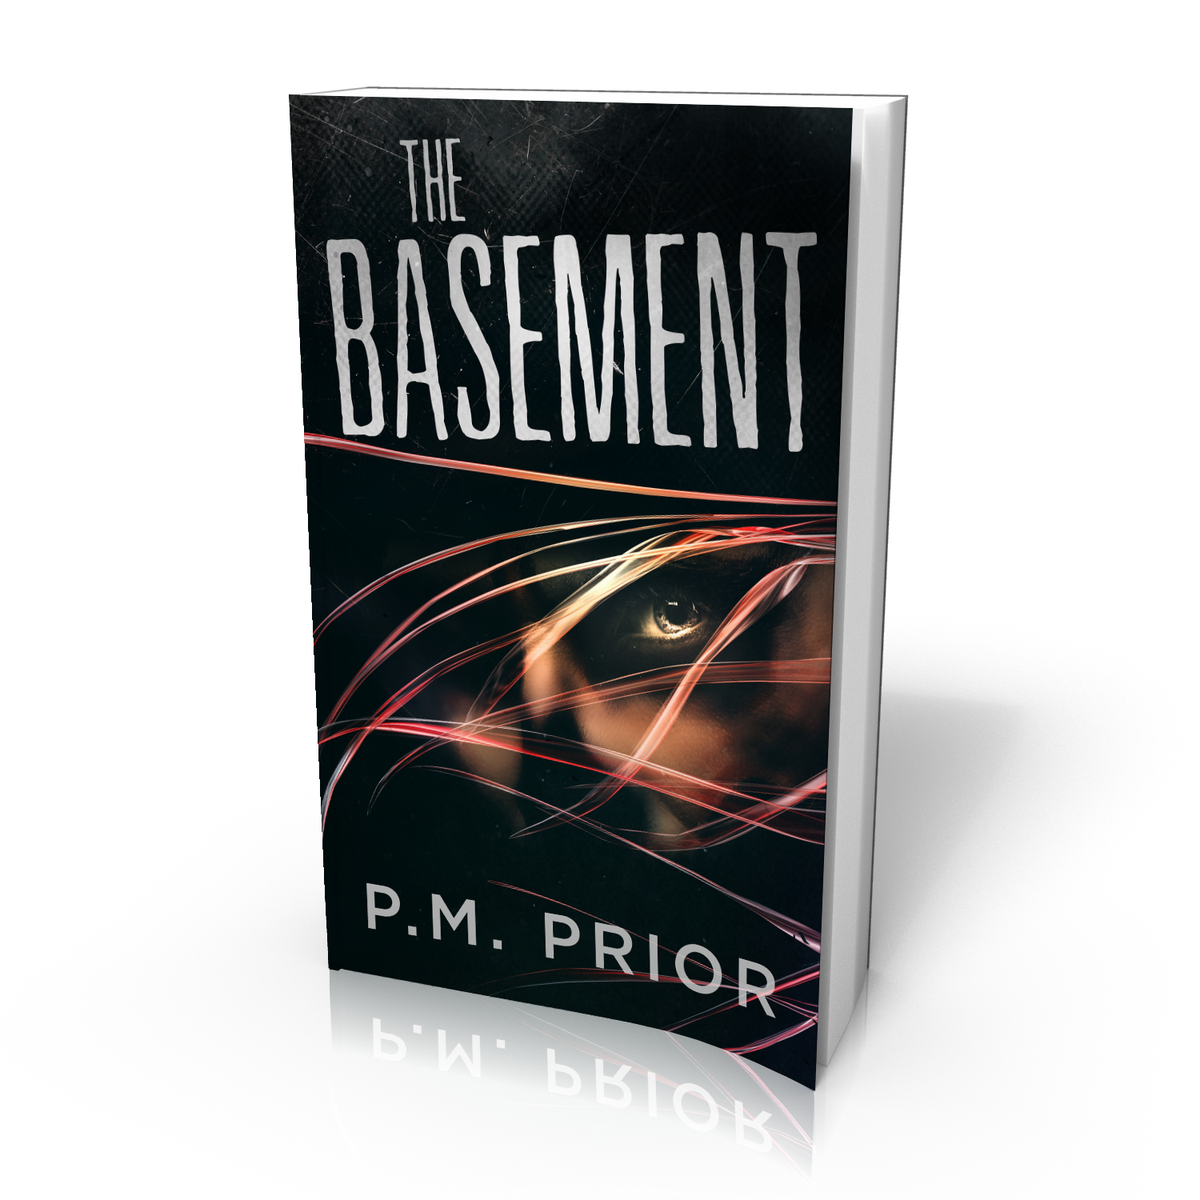 P.M. Prior: Get Trapped In The Basement For Just 99 CENTS